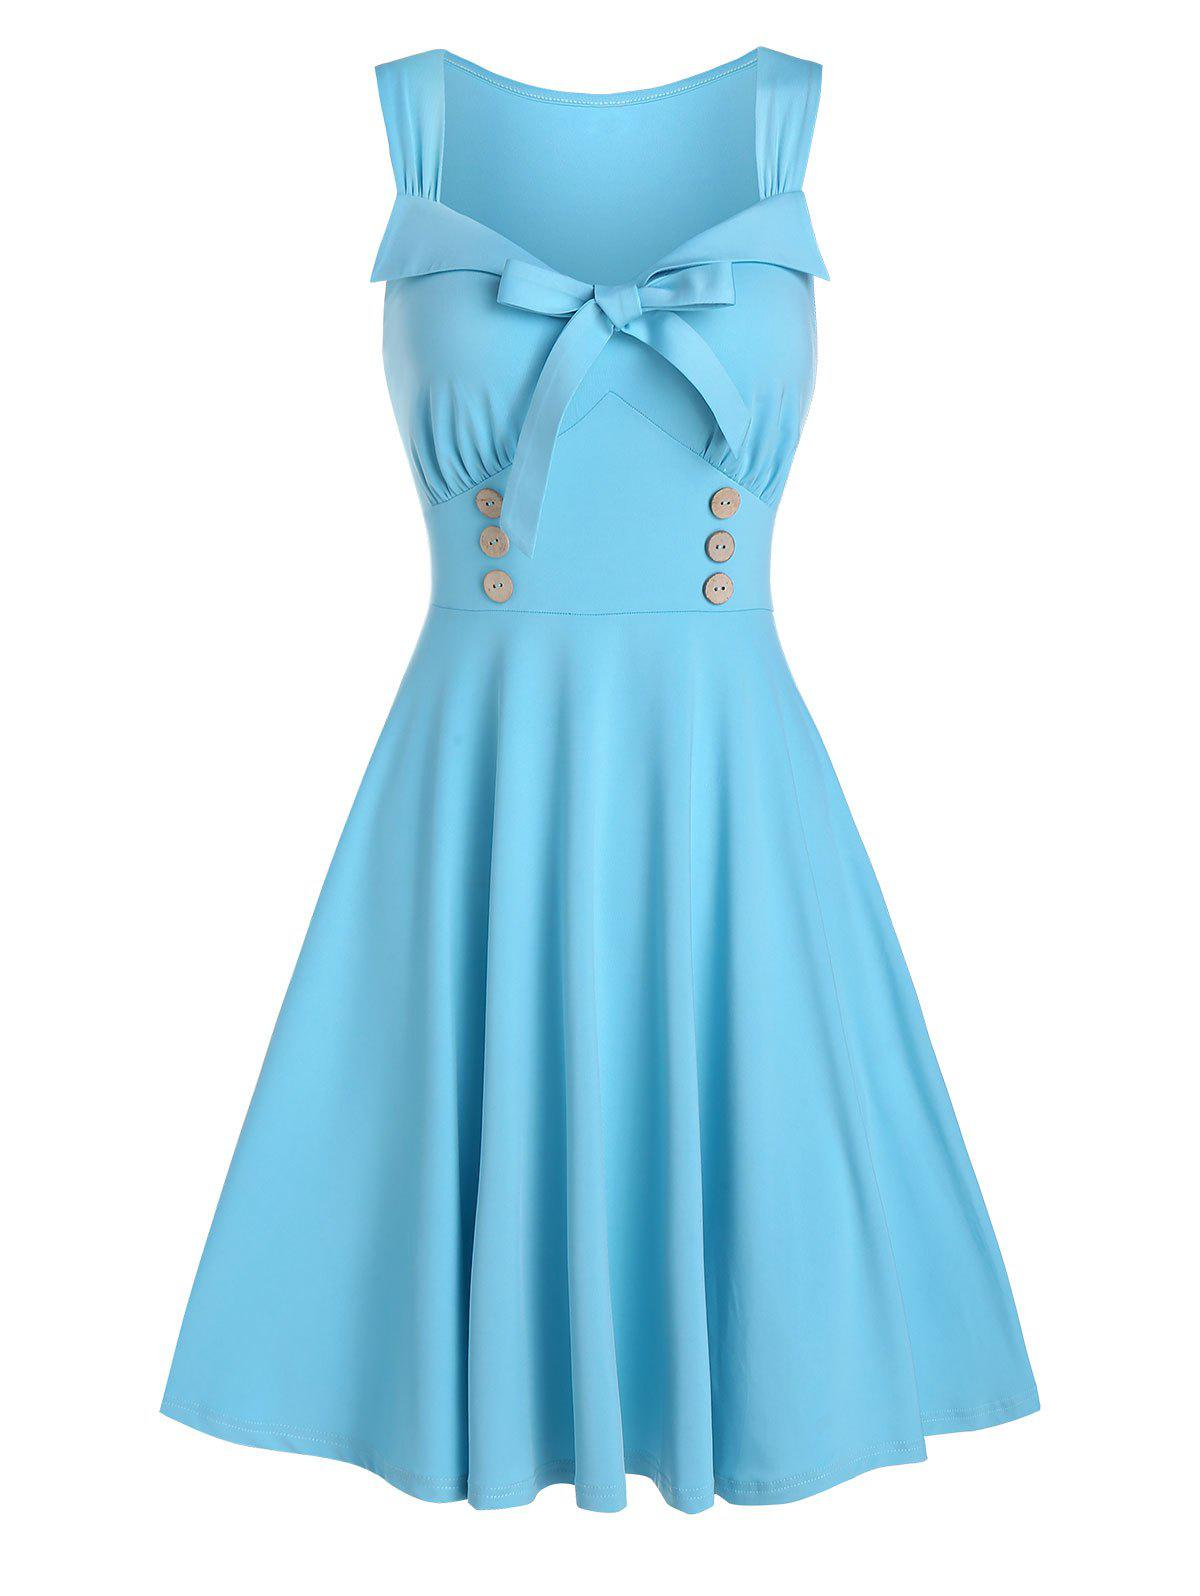 Fashion Bowknot Sweetheart Neck Sleeveless A Line Dress